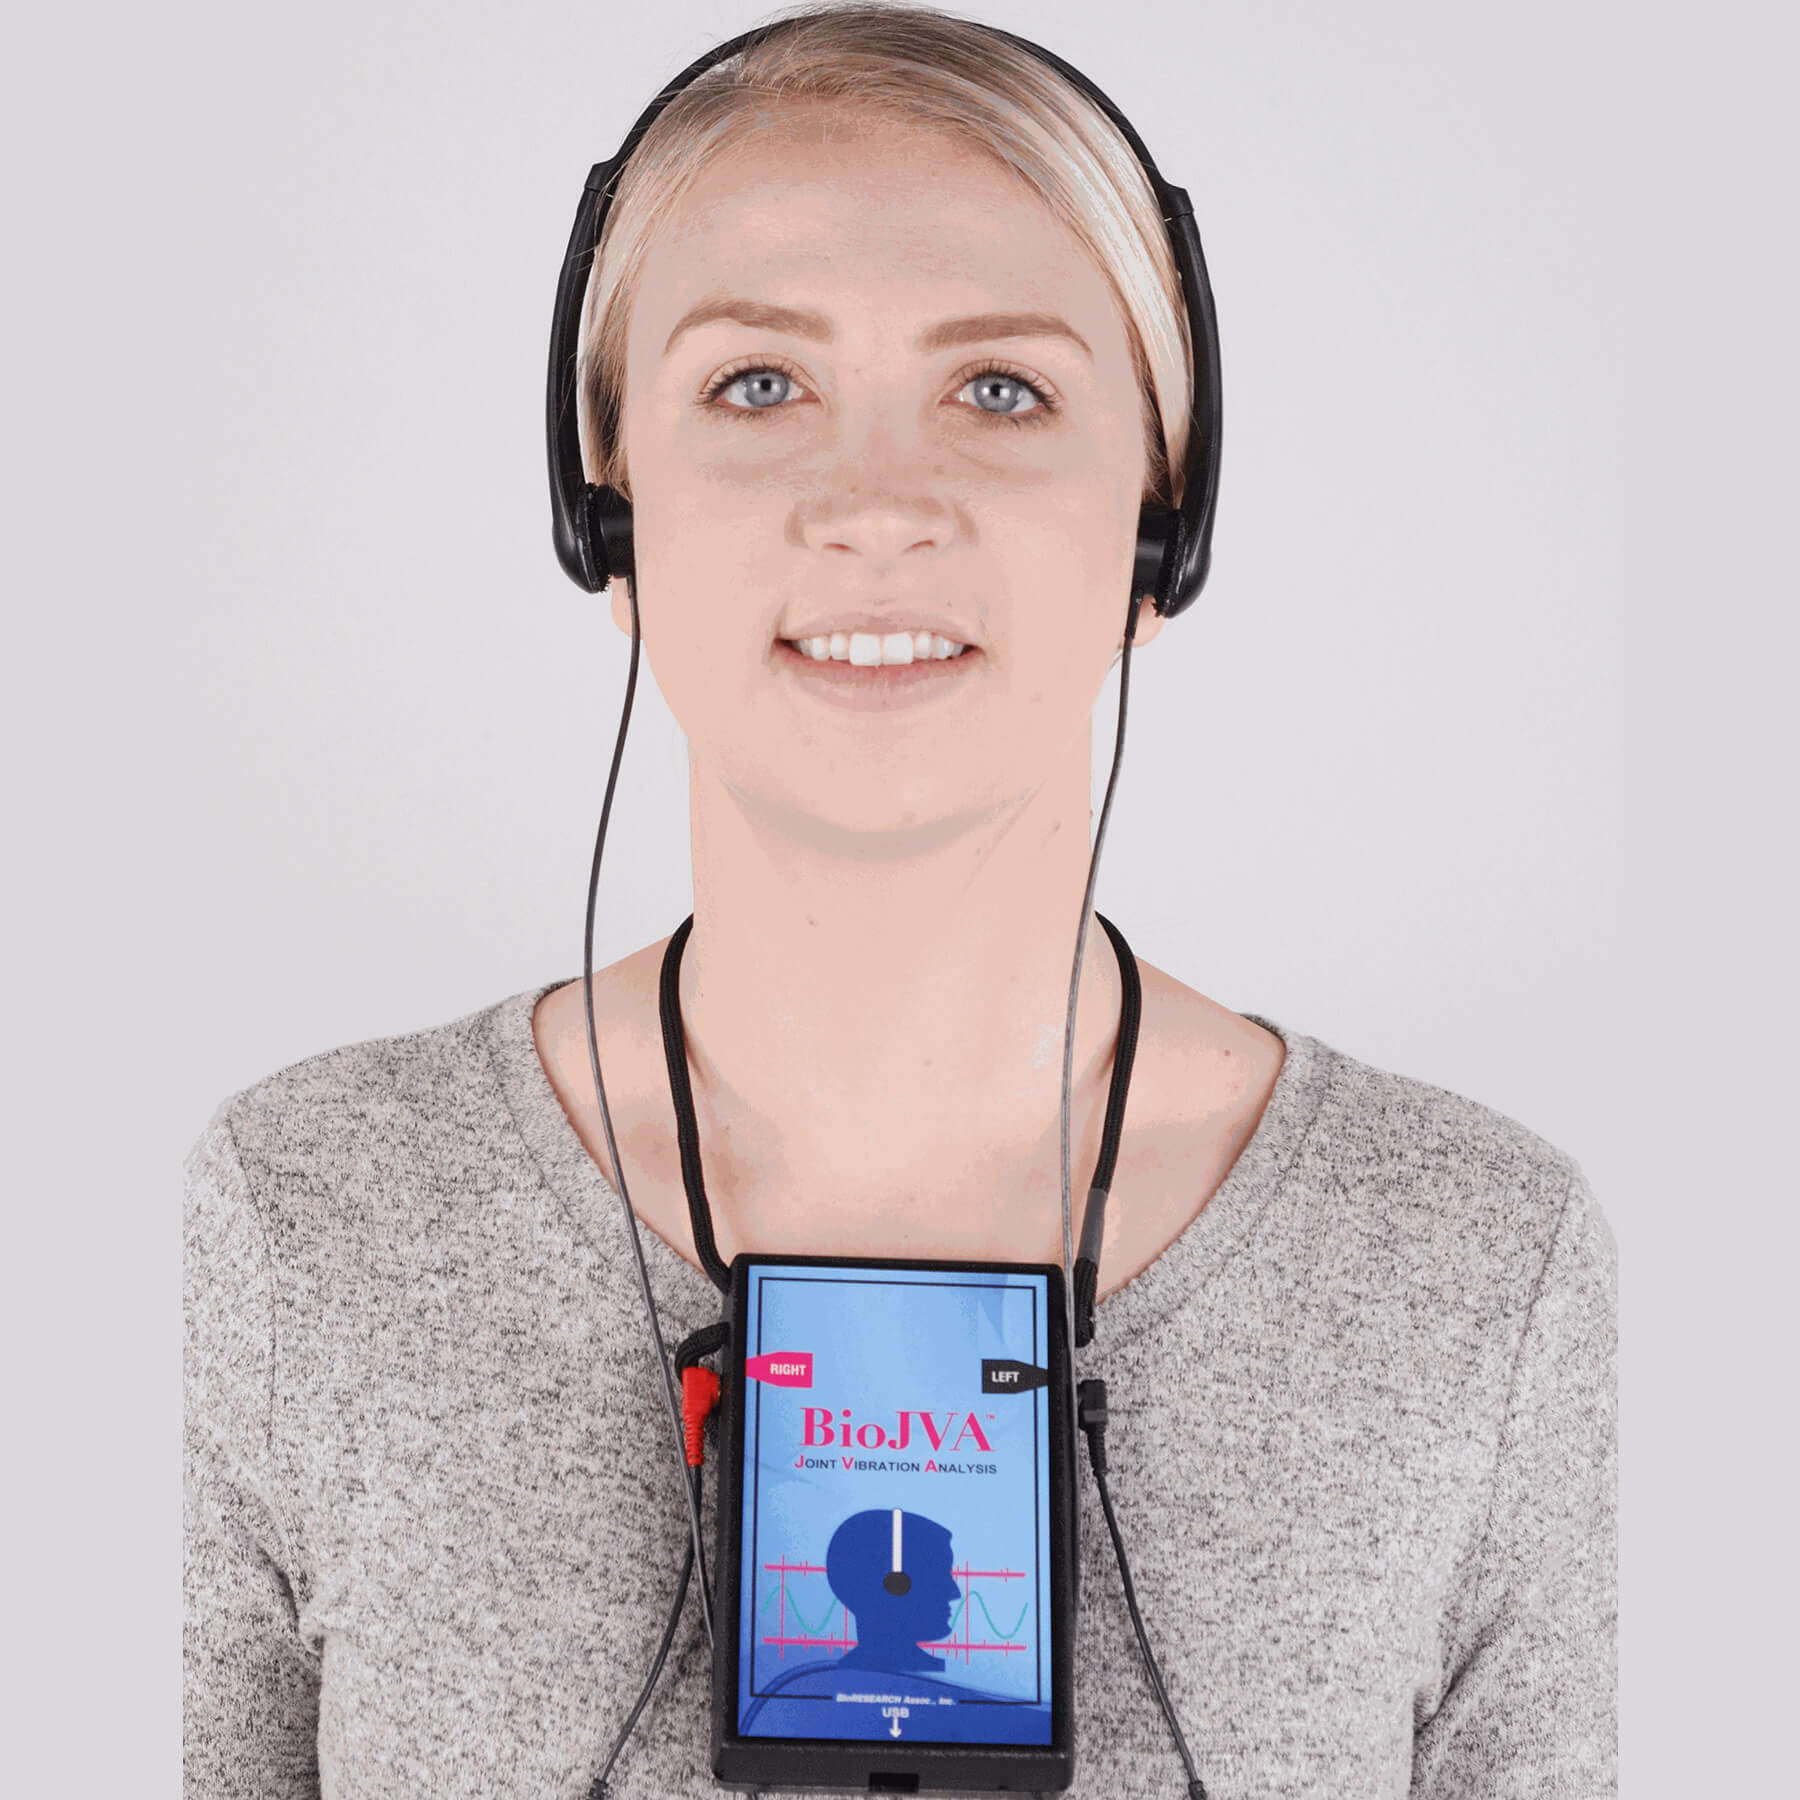 women wearing headphones with measuring device attached to chest